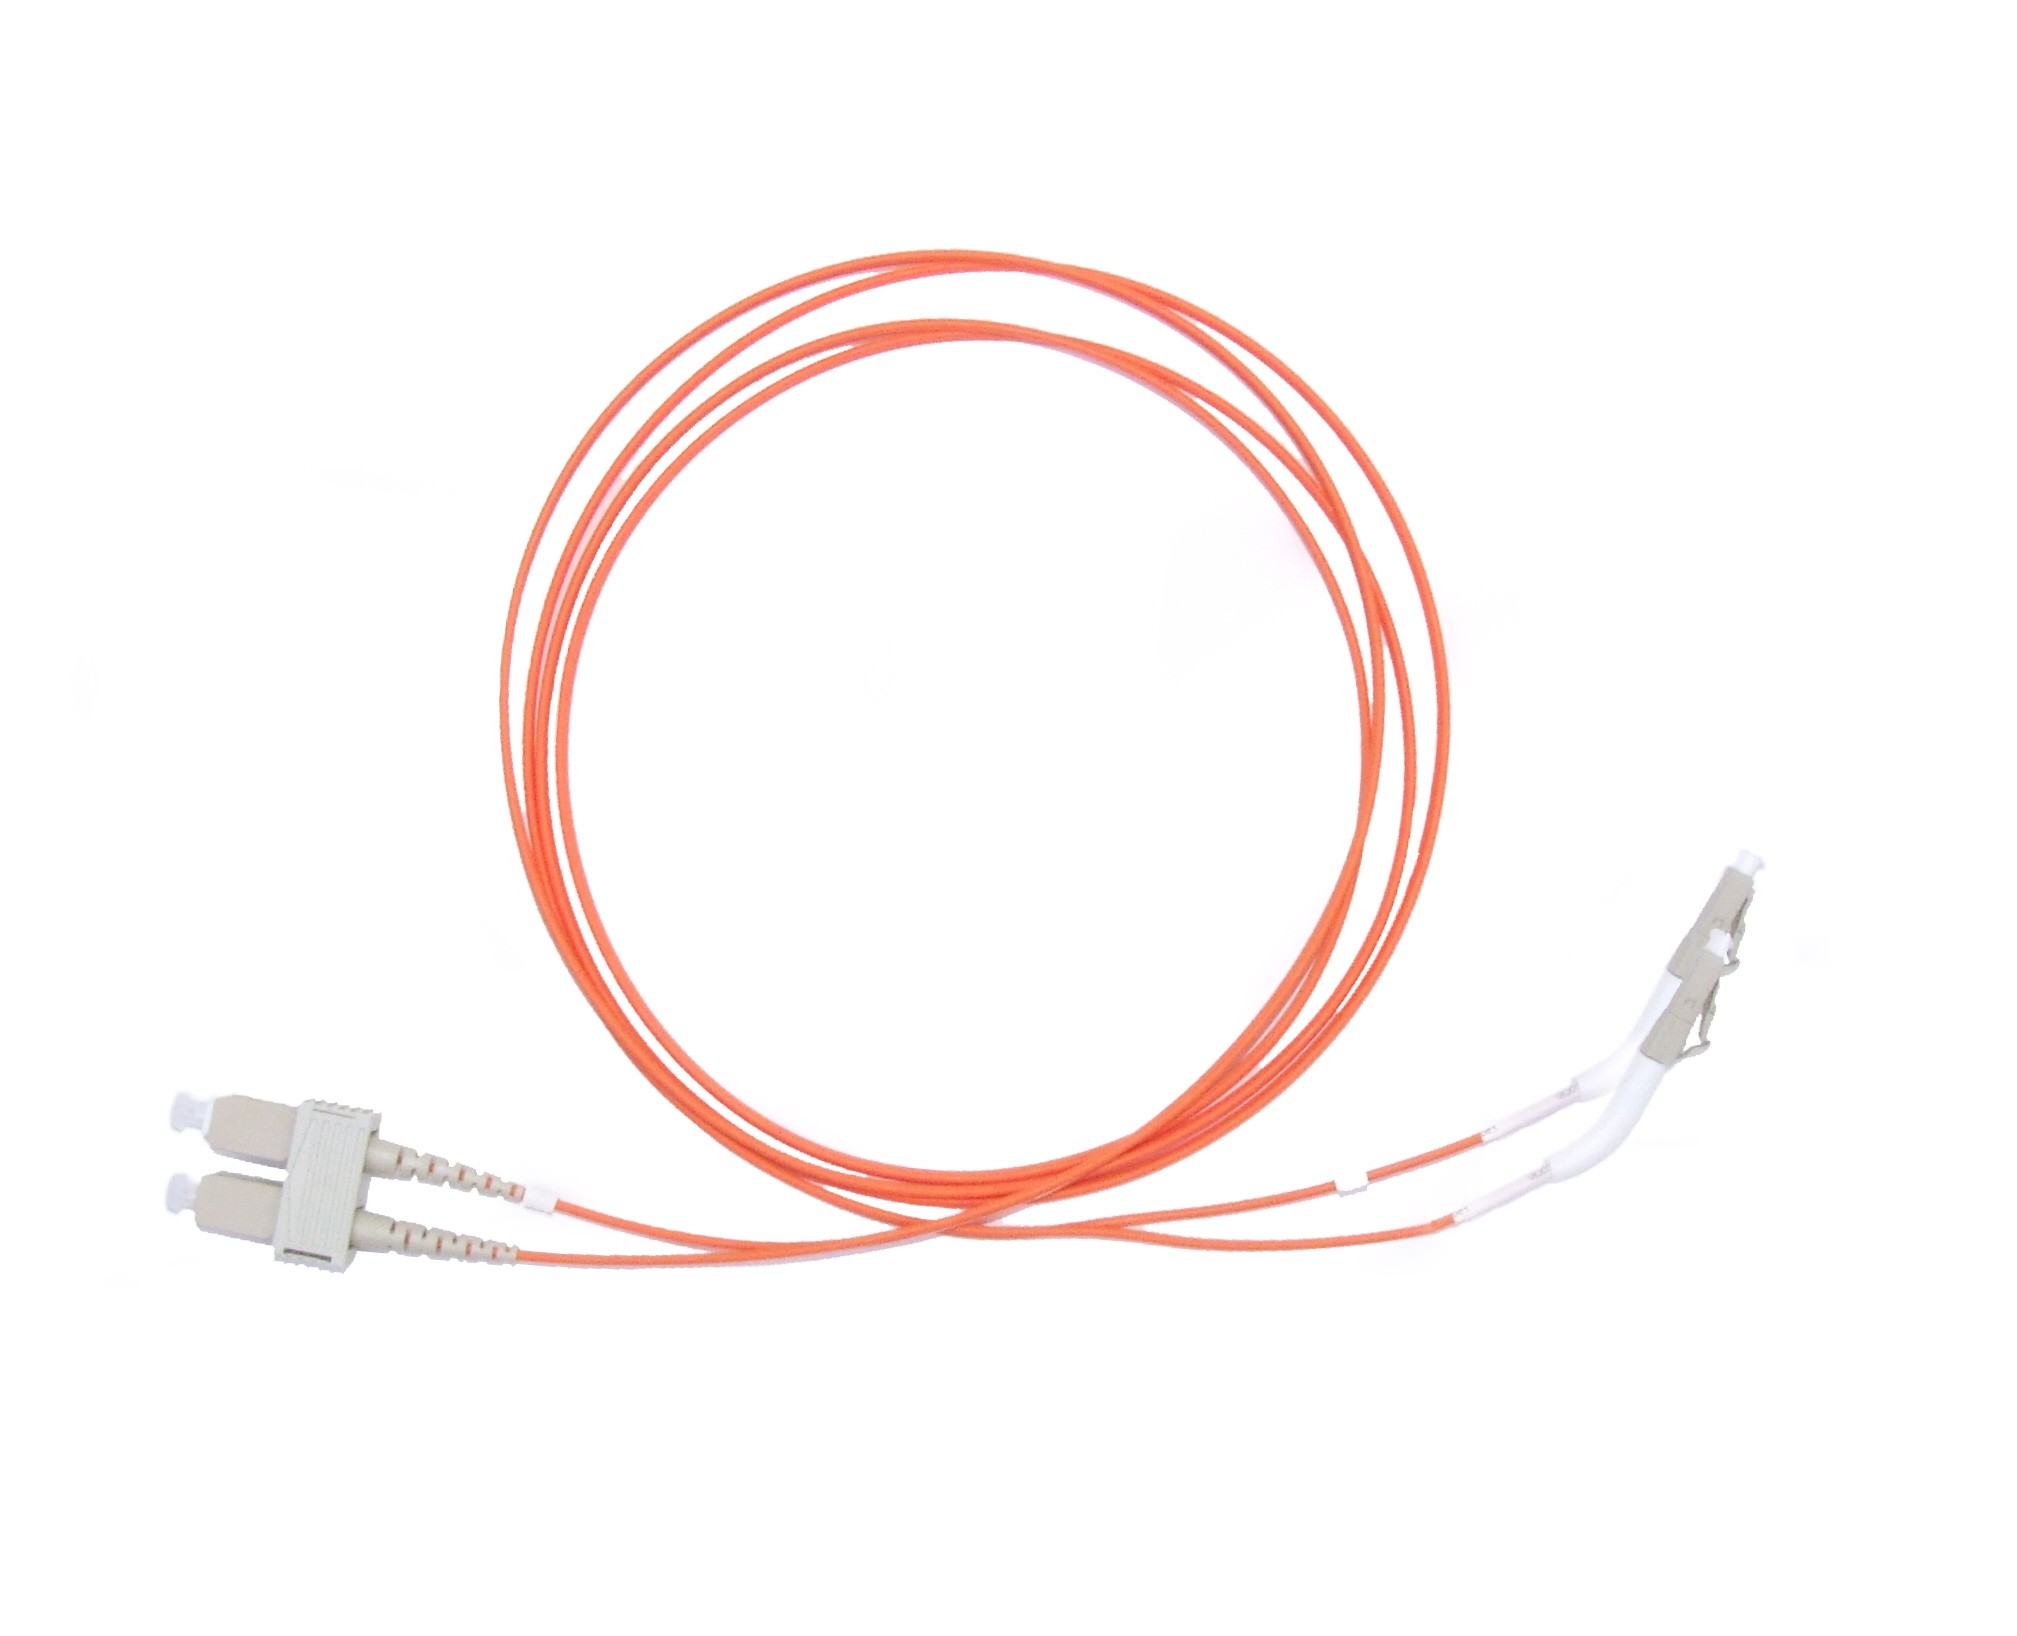 LC 45 deg boot - SC Multimode fibre patch cable 62.5/125 OM1 Duplex 2m